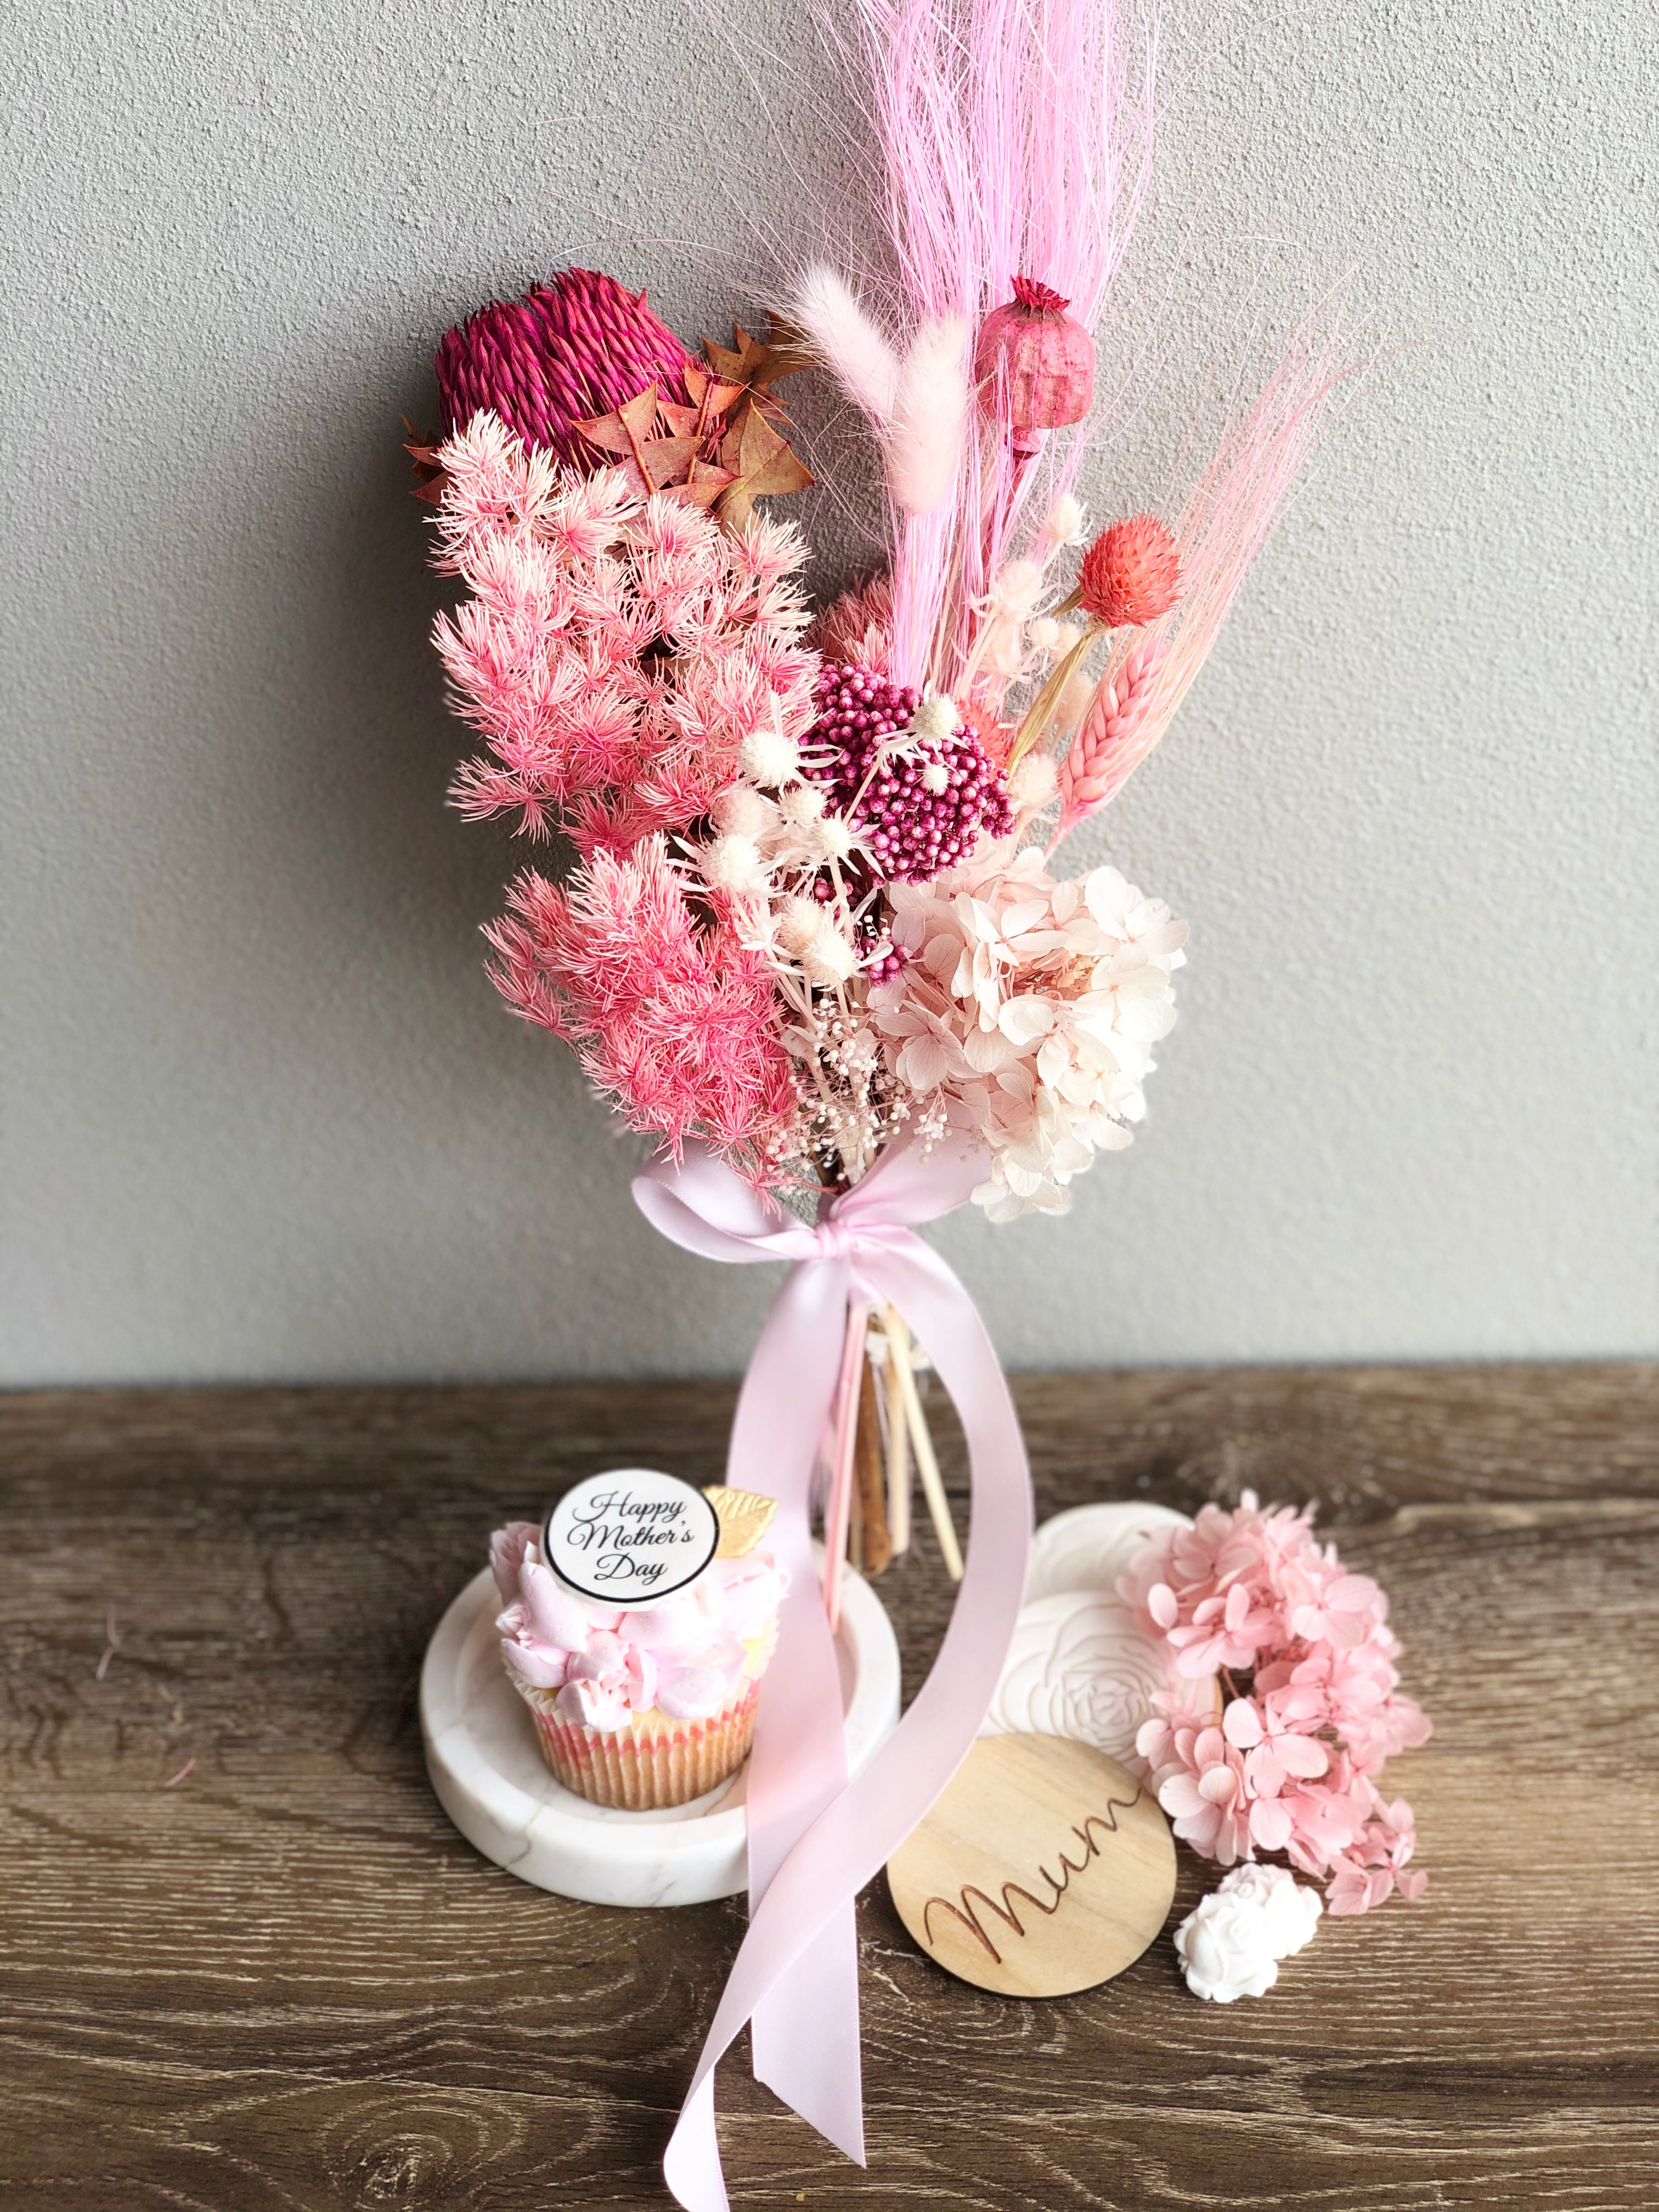 Cinta Rose 4 Pack of Mother's Day Cupcakes & Petite Preserved Arrangement